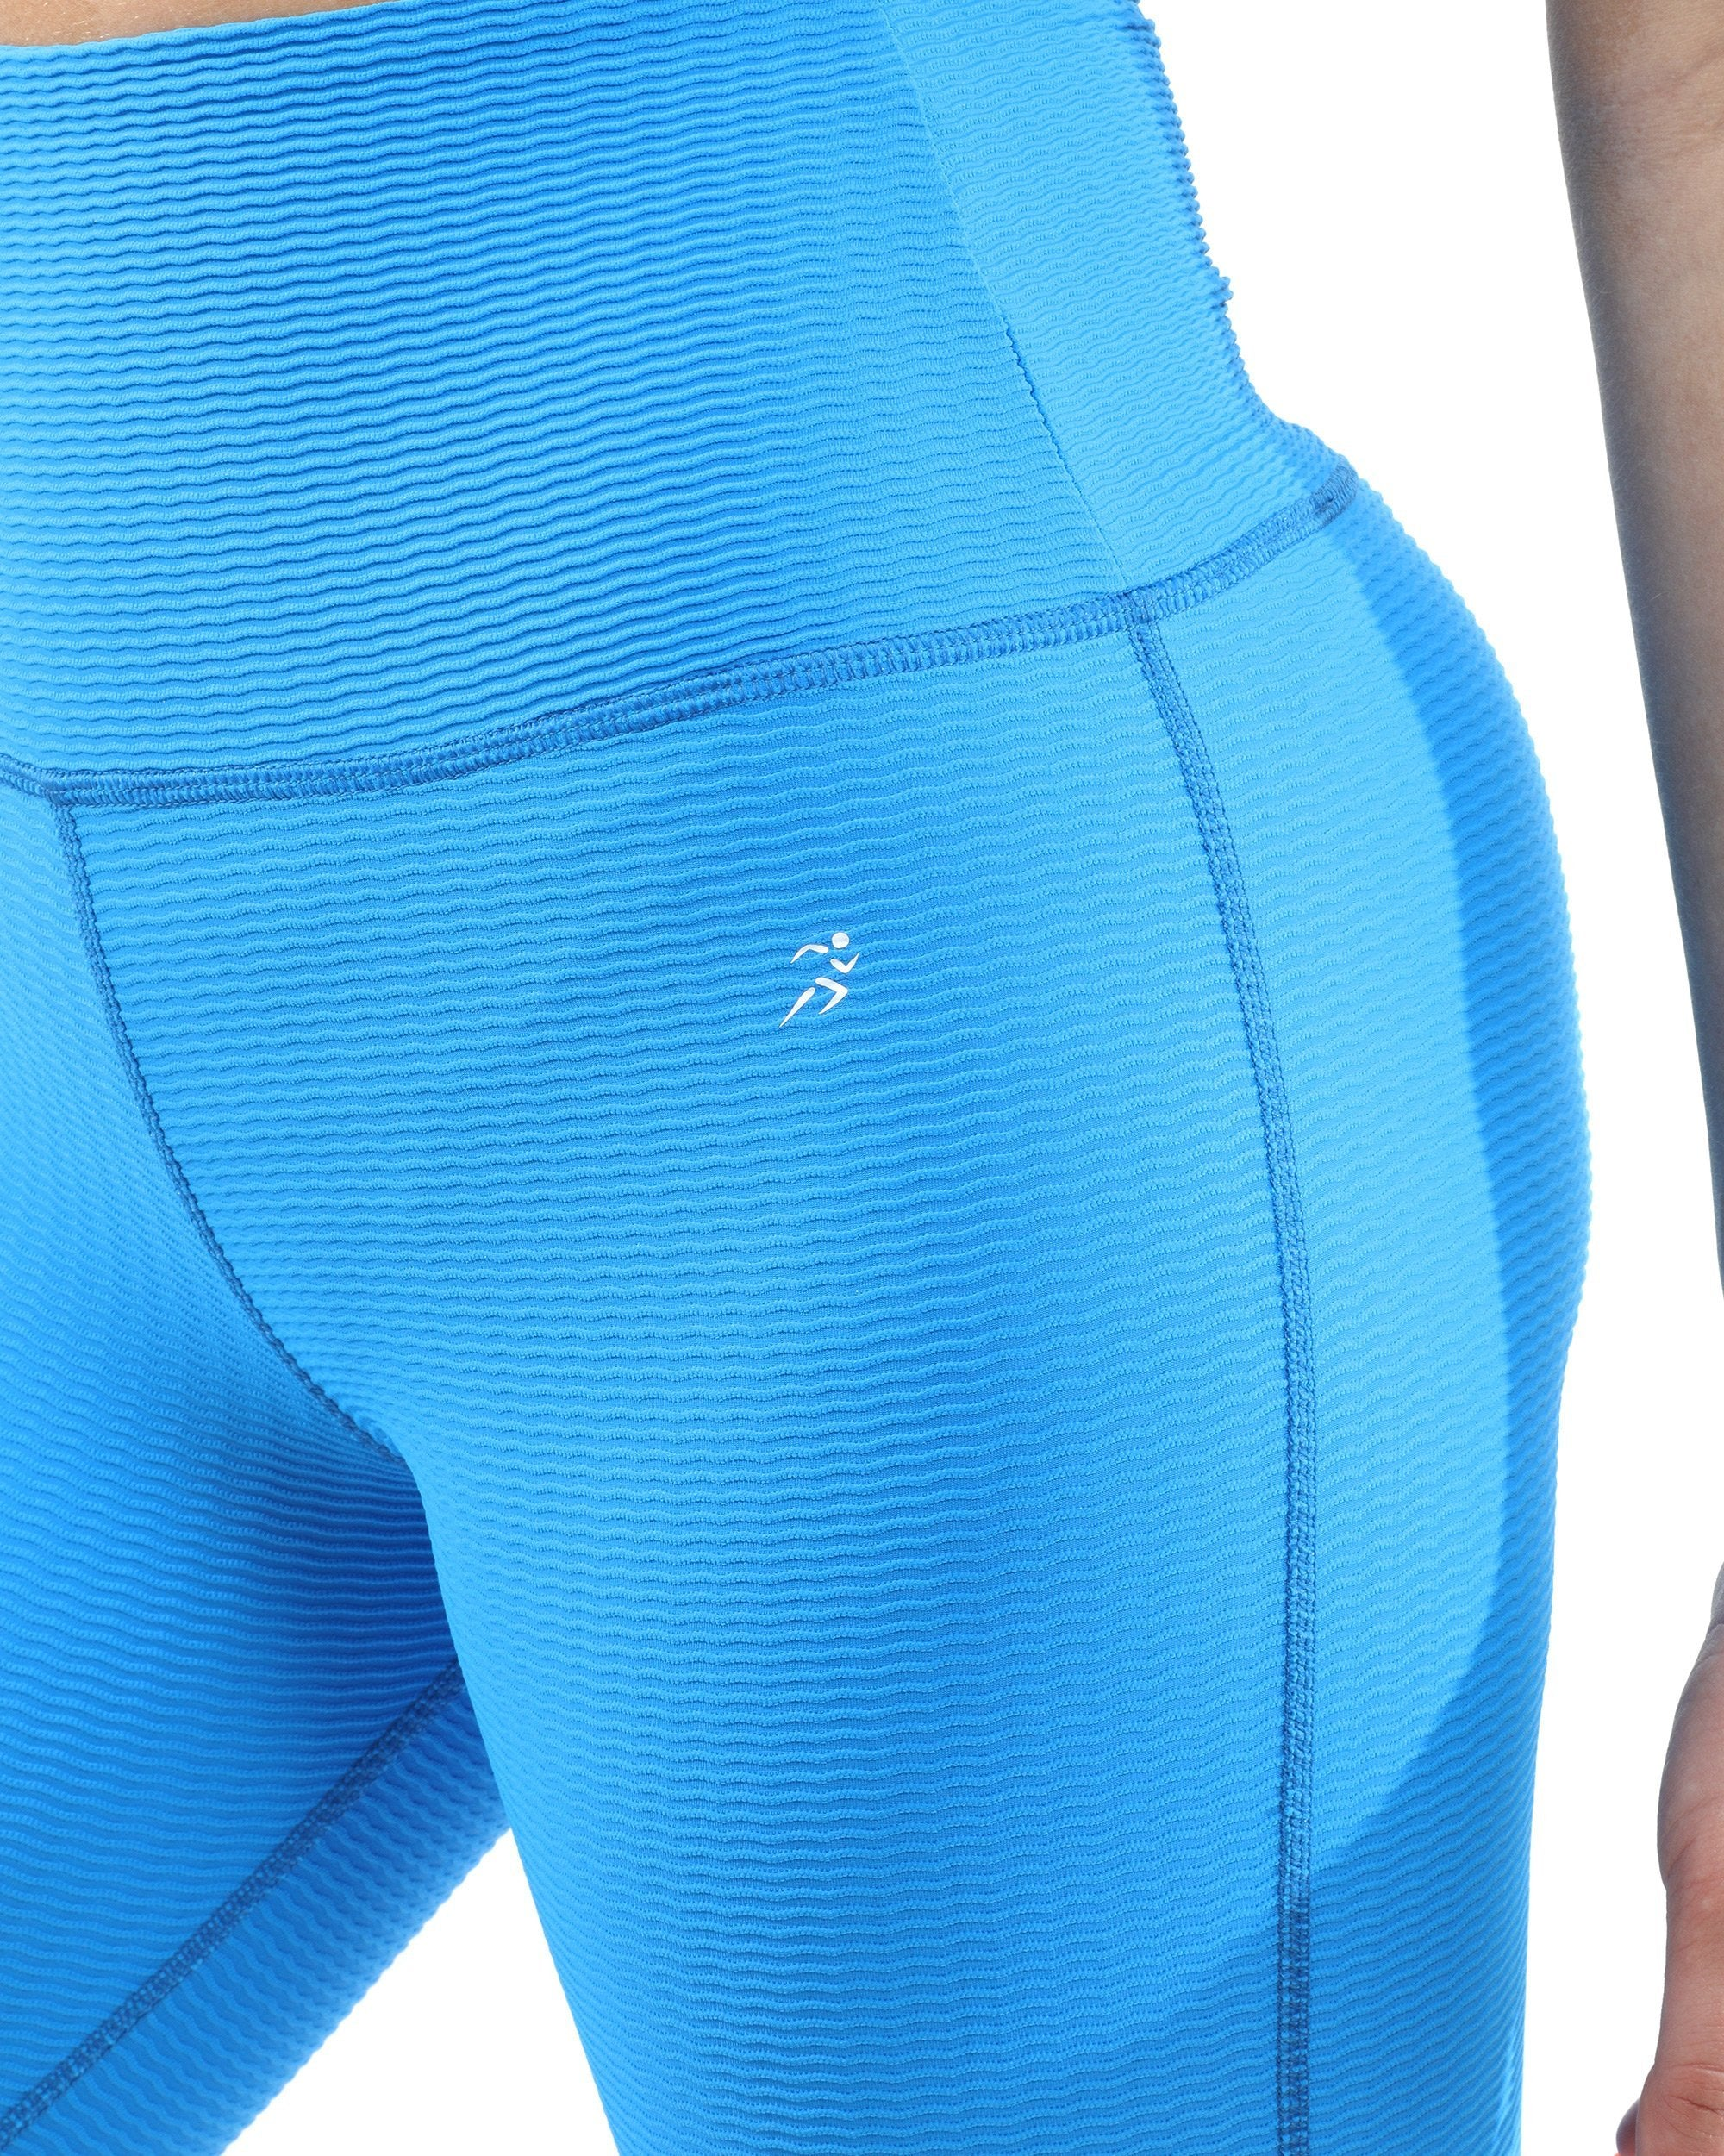 Positano Activewear Leggings - Aqua [MADE IN ITALY]